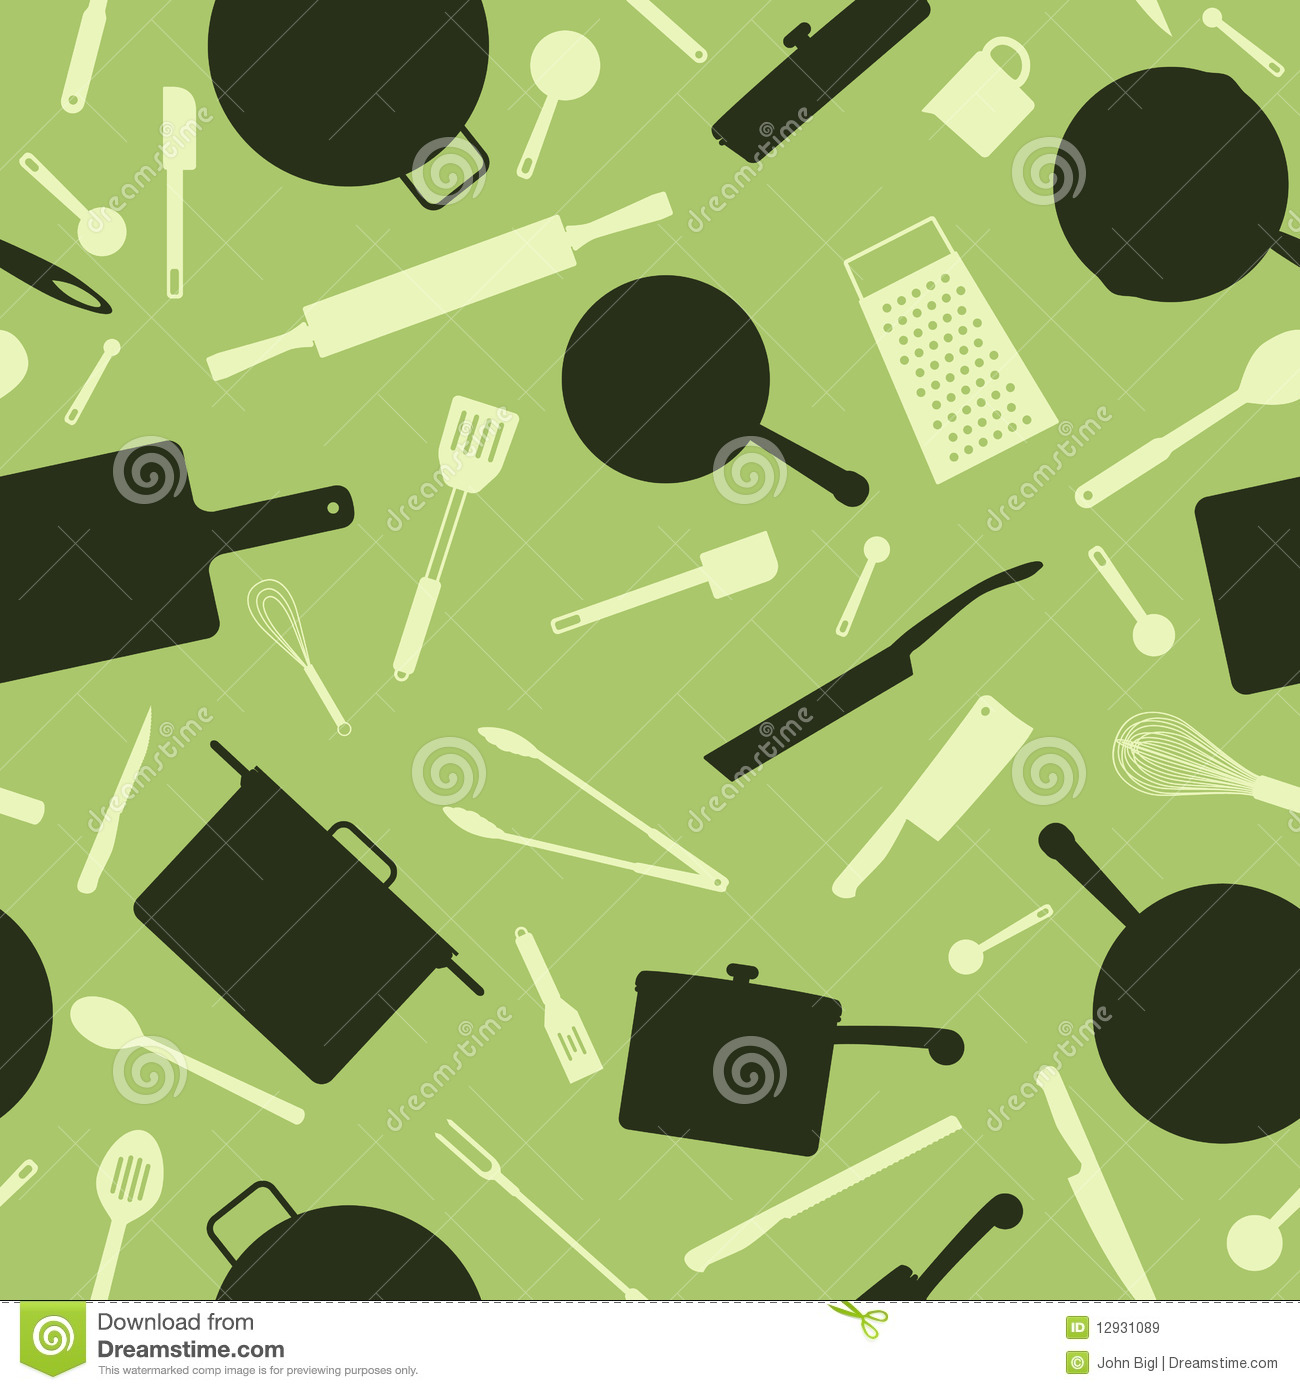 Kitchen Utensils Background: Seamless Utensil Background Royalty Free Stock Images